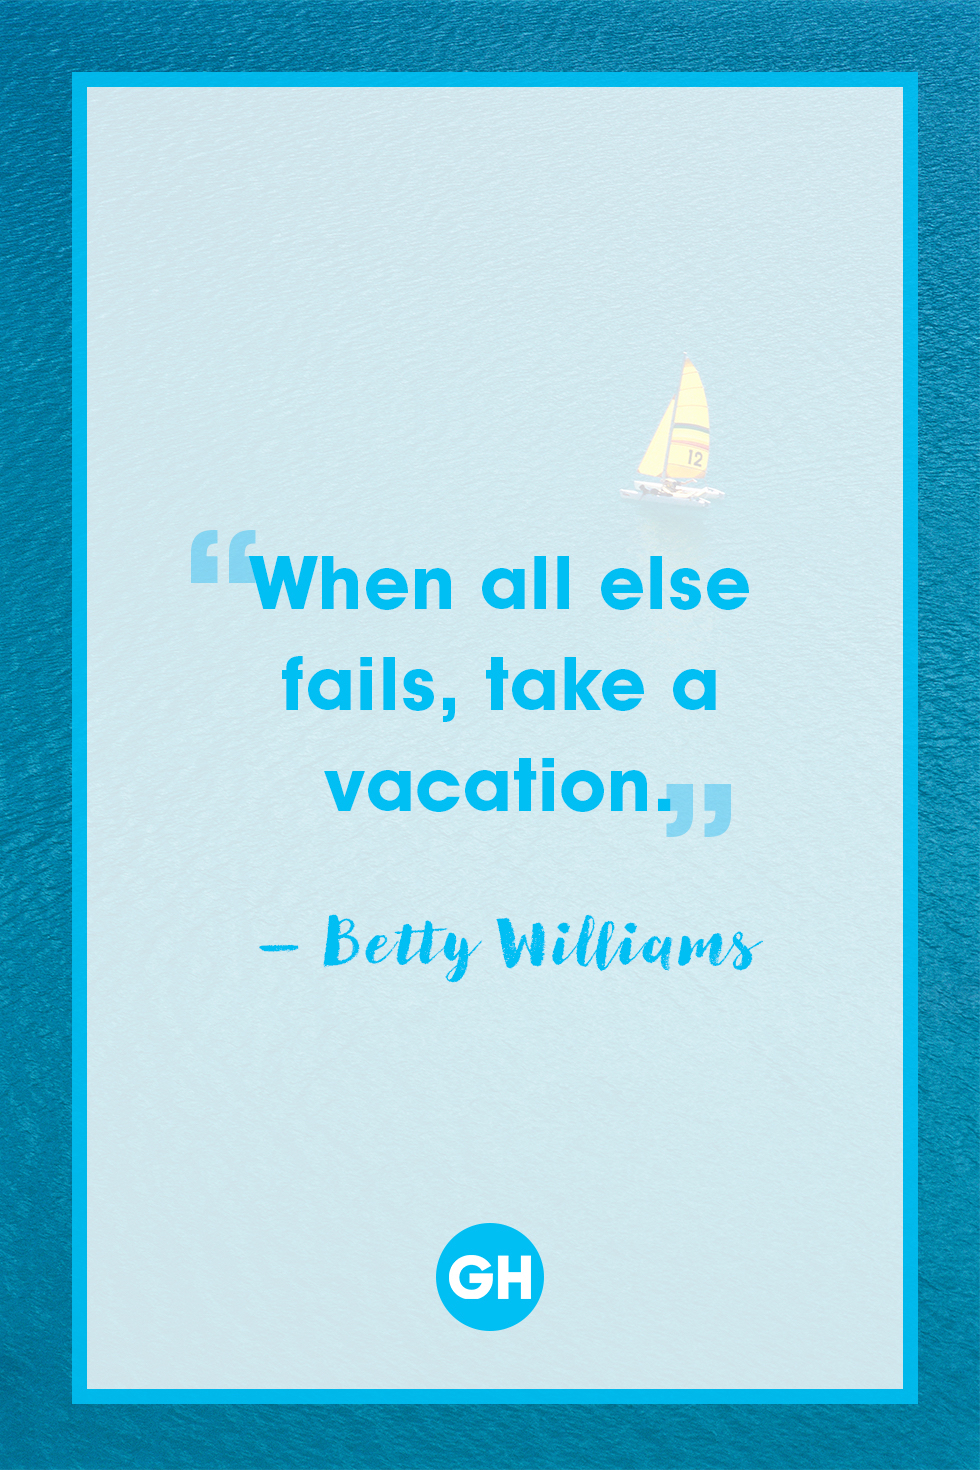 Vacation Quotes 15 Best Summer Quotes  Funny Sayings About Vacation